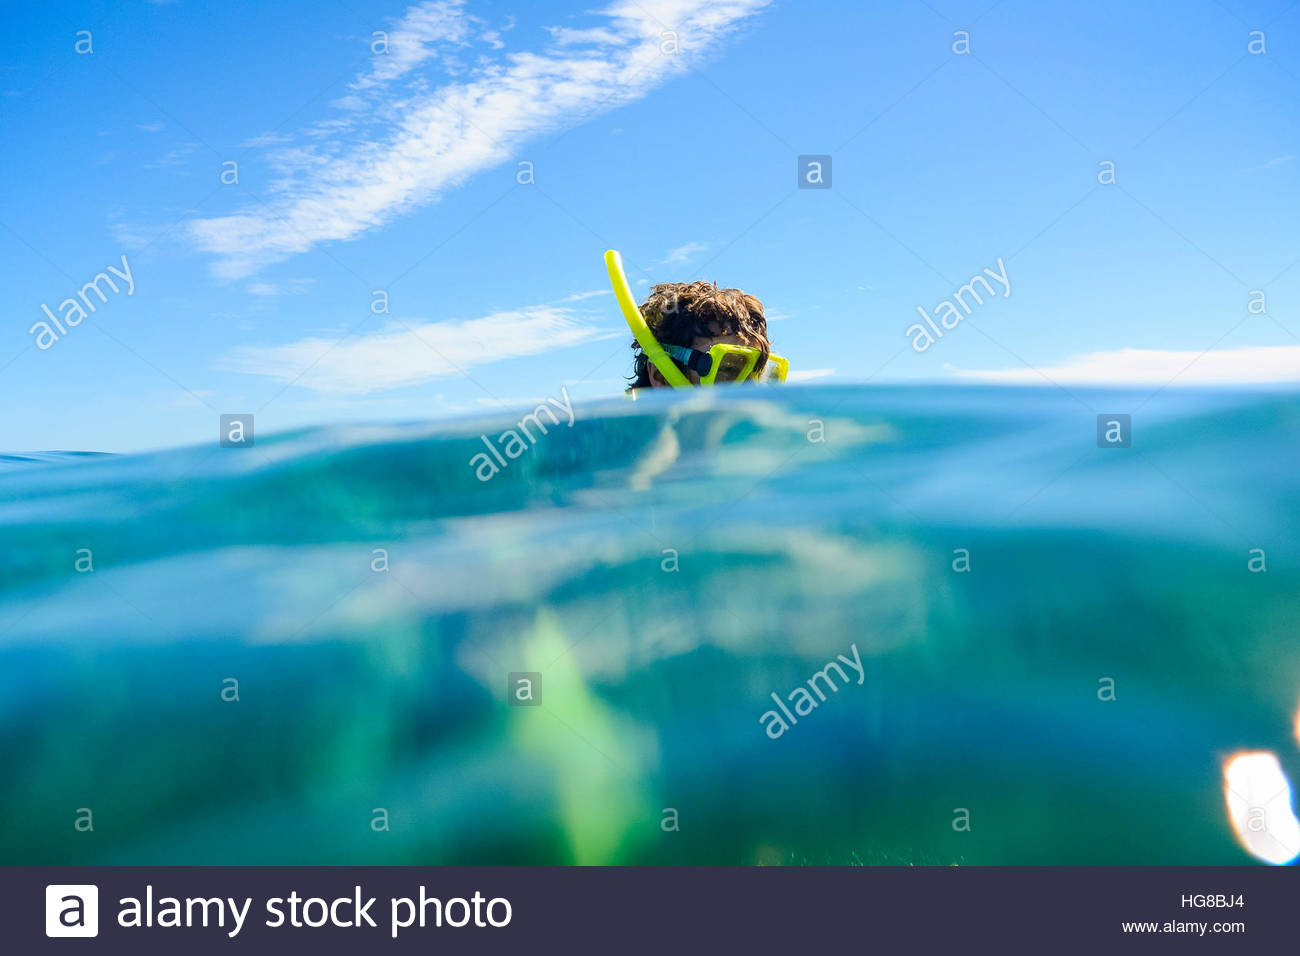 Man snorkeling in sea against blue sky on sunny day - Stock Image